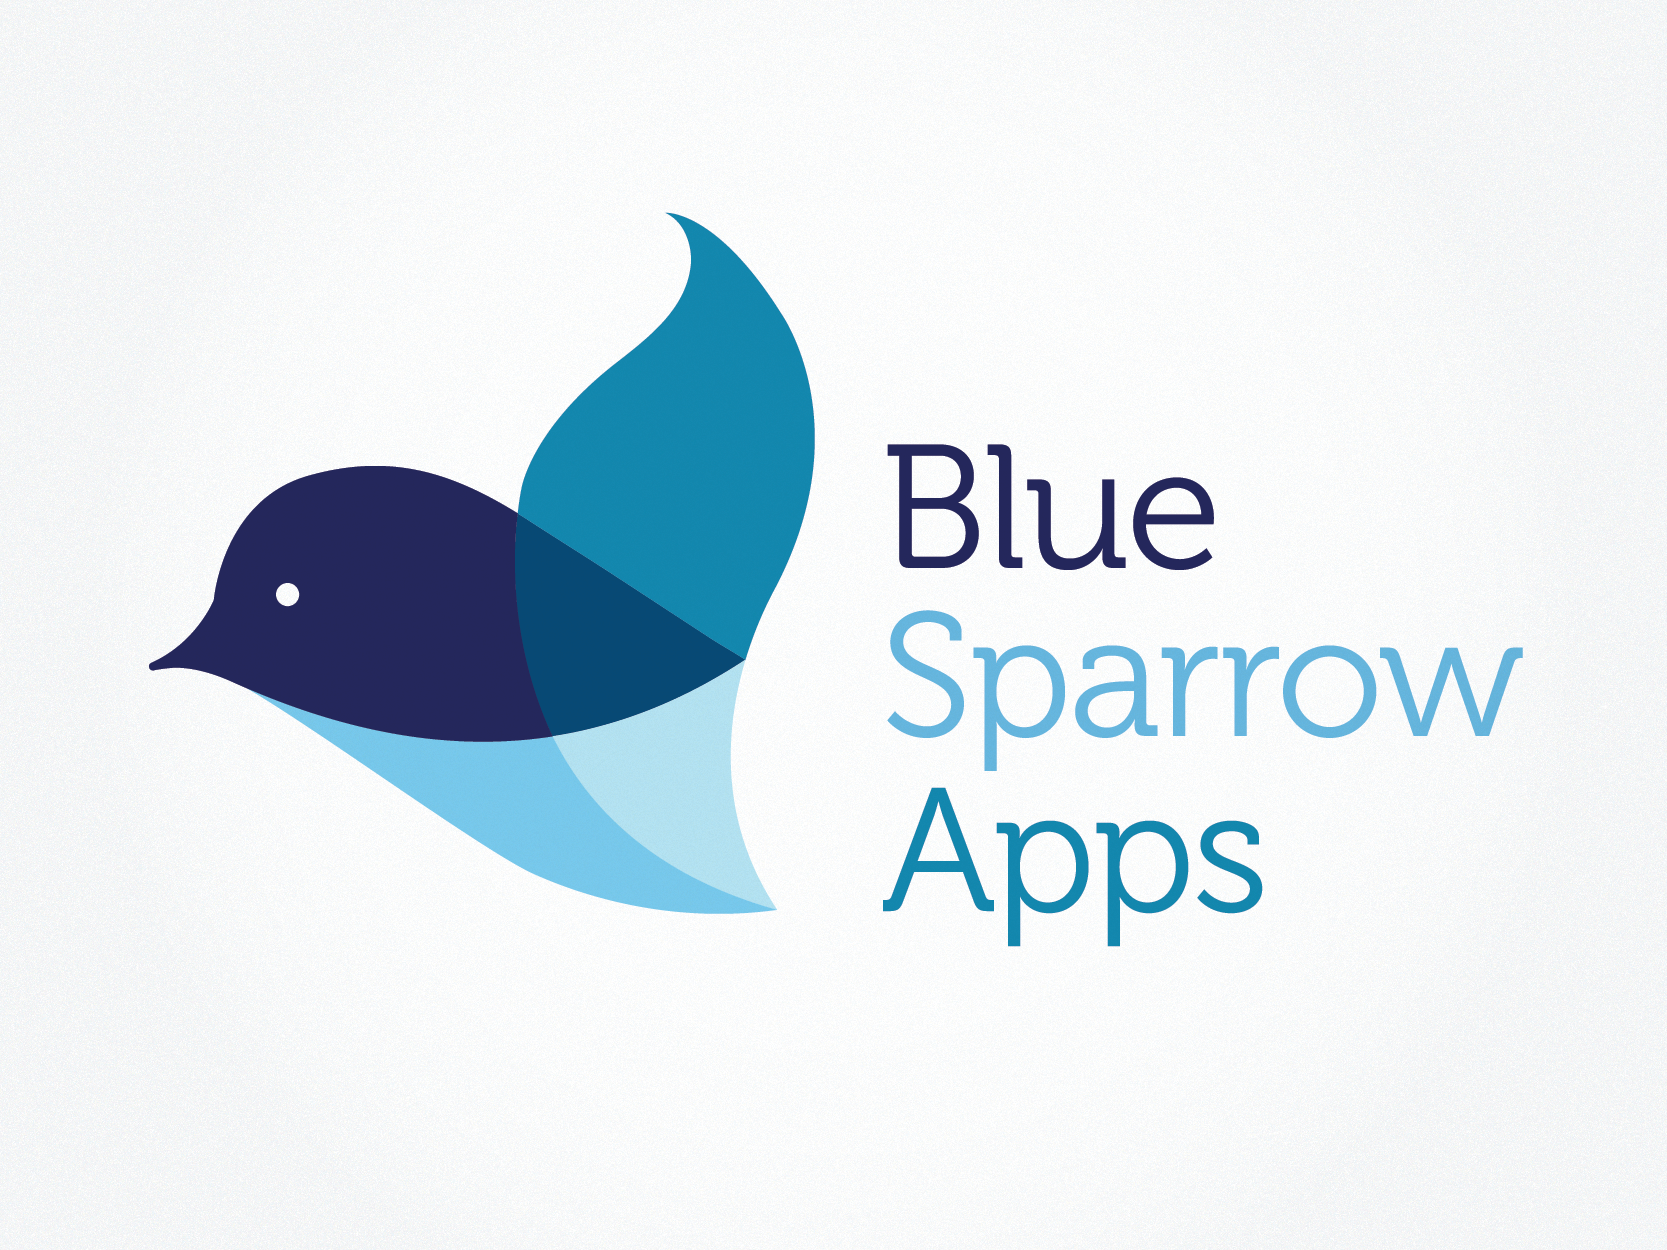 Blue Sparrow Apps at The Living Room Coworking